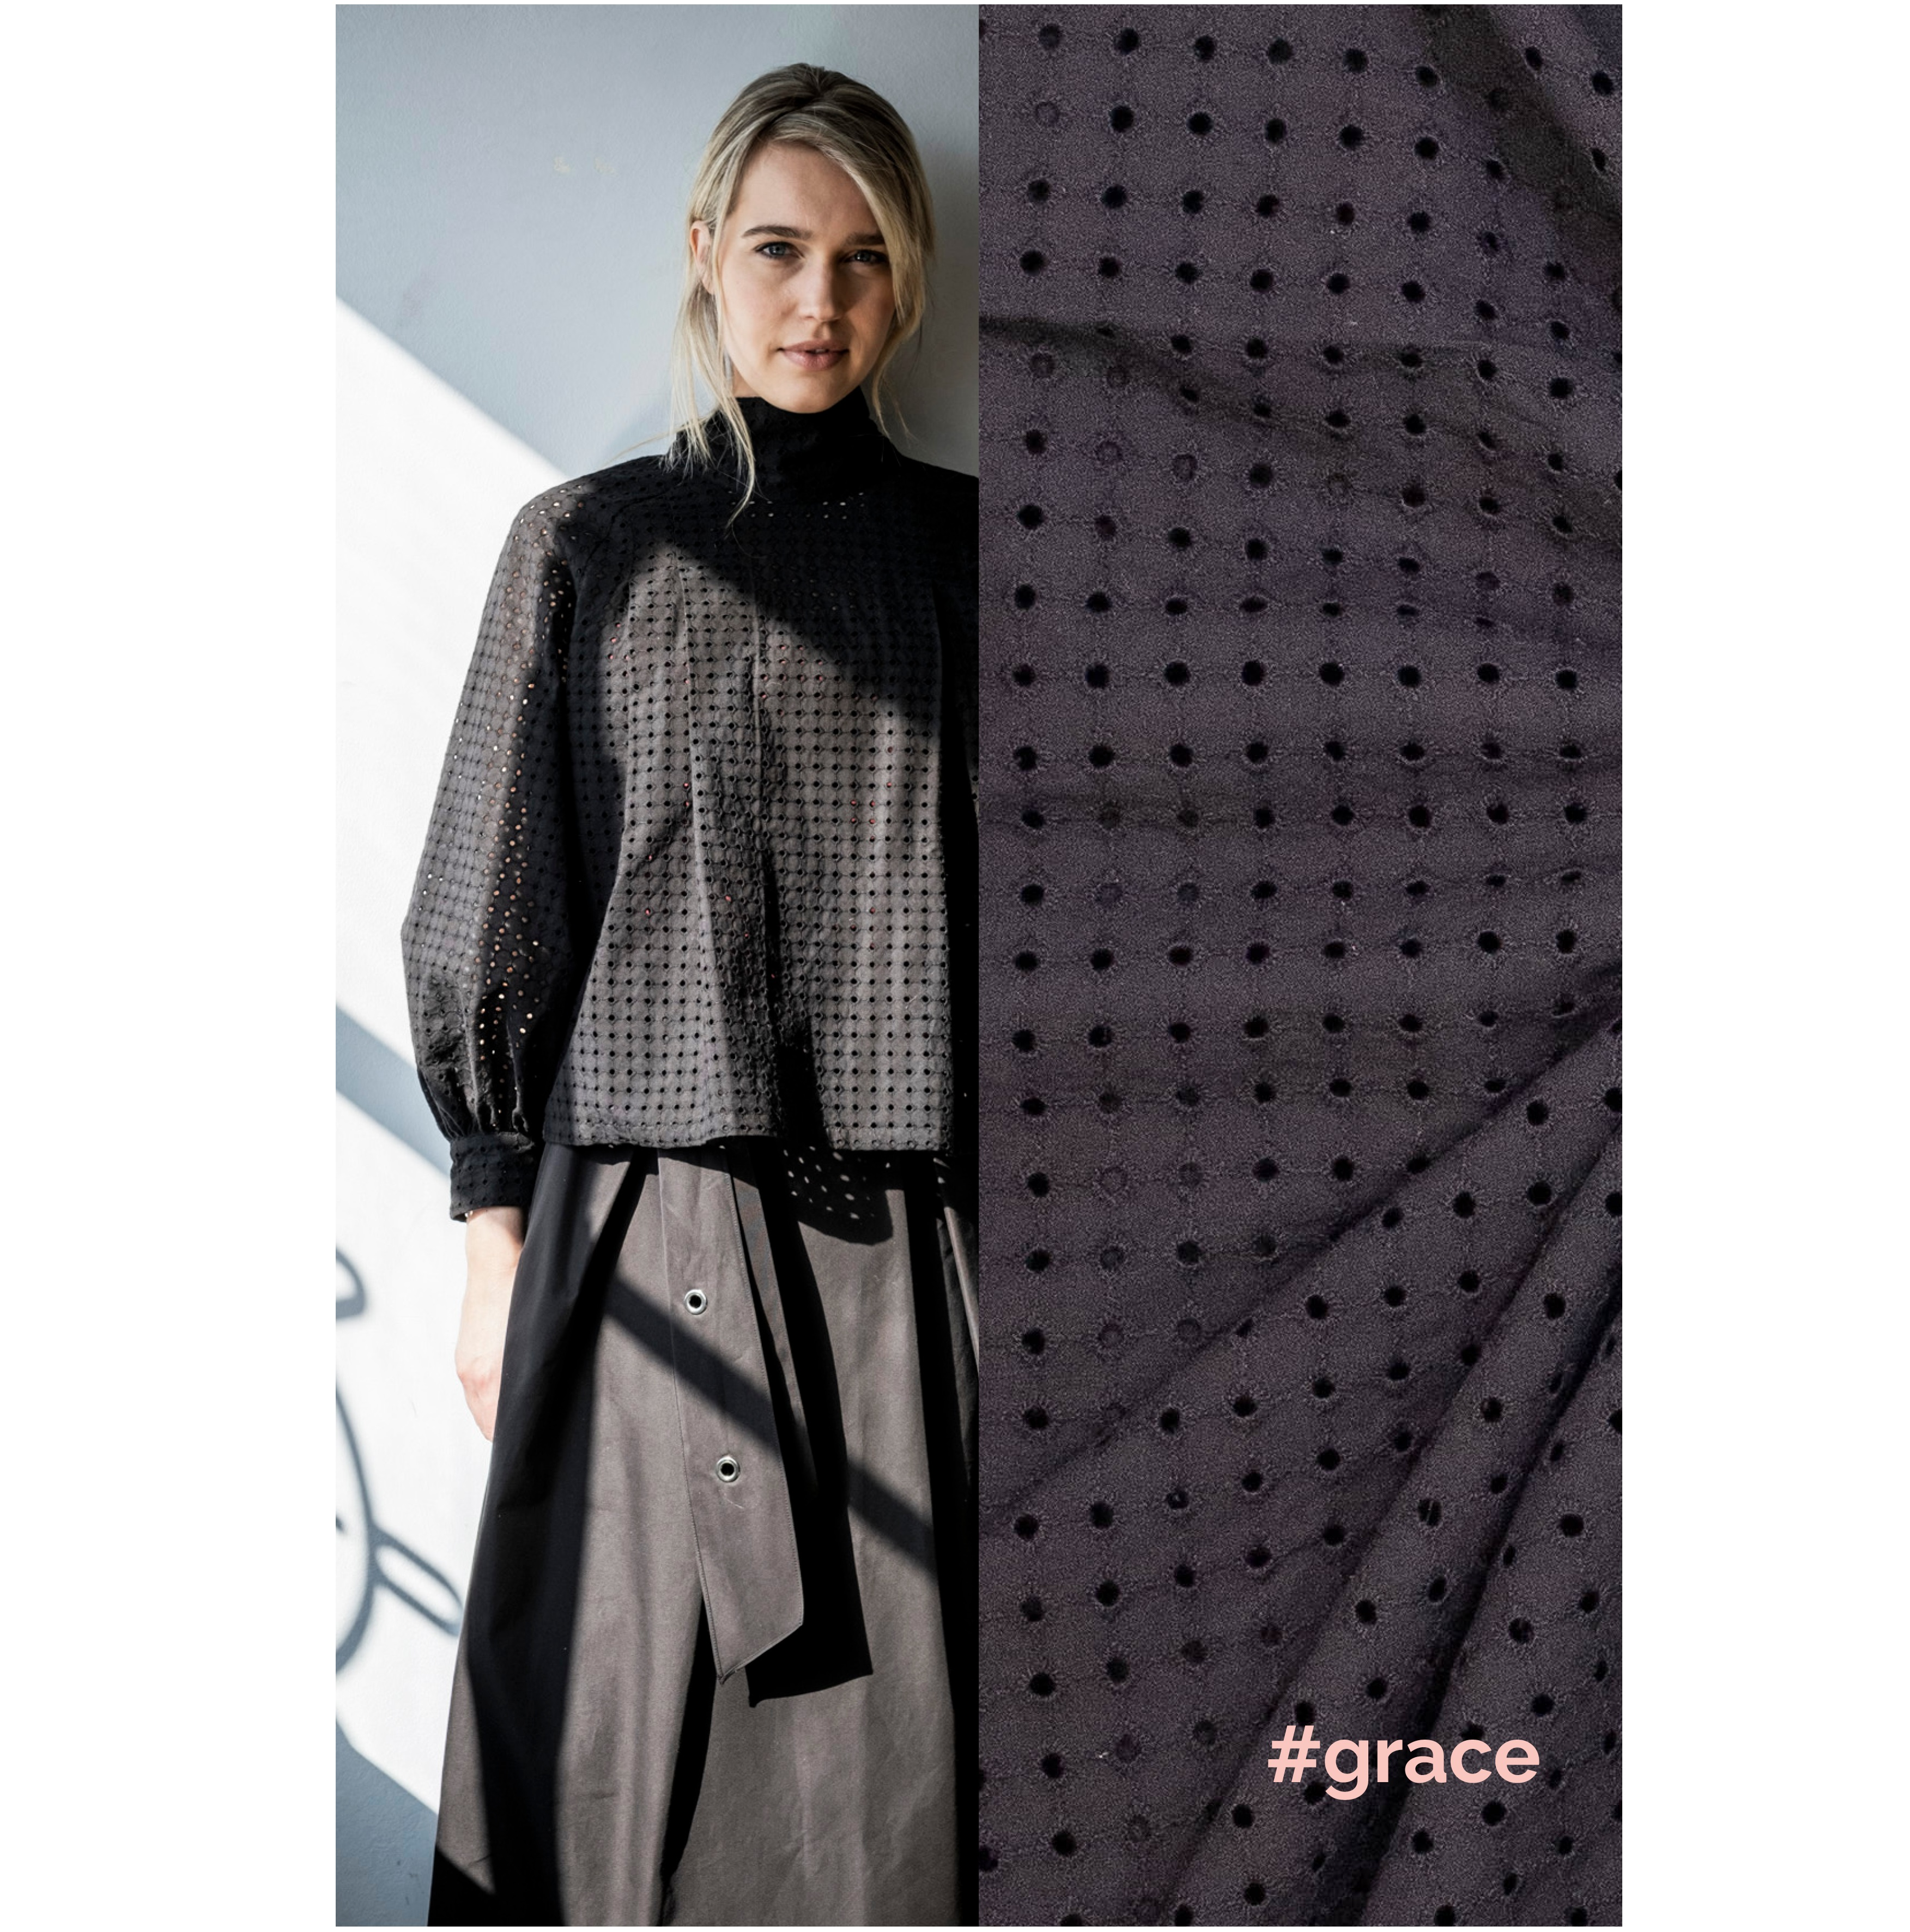 Fibre Mood #Grace, Baumwolle Stickerei, schwarz. Art. FM310125